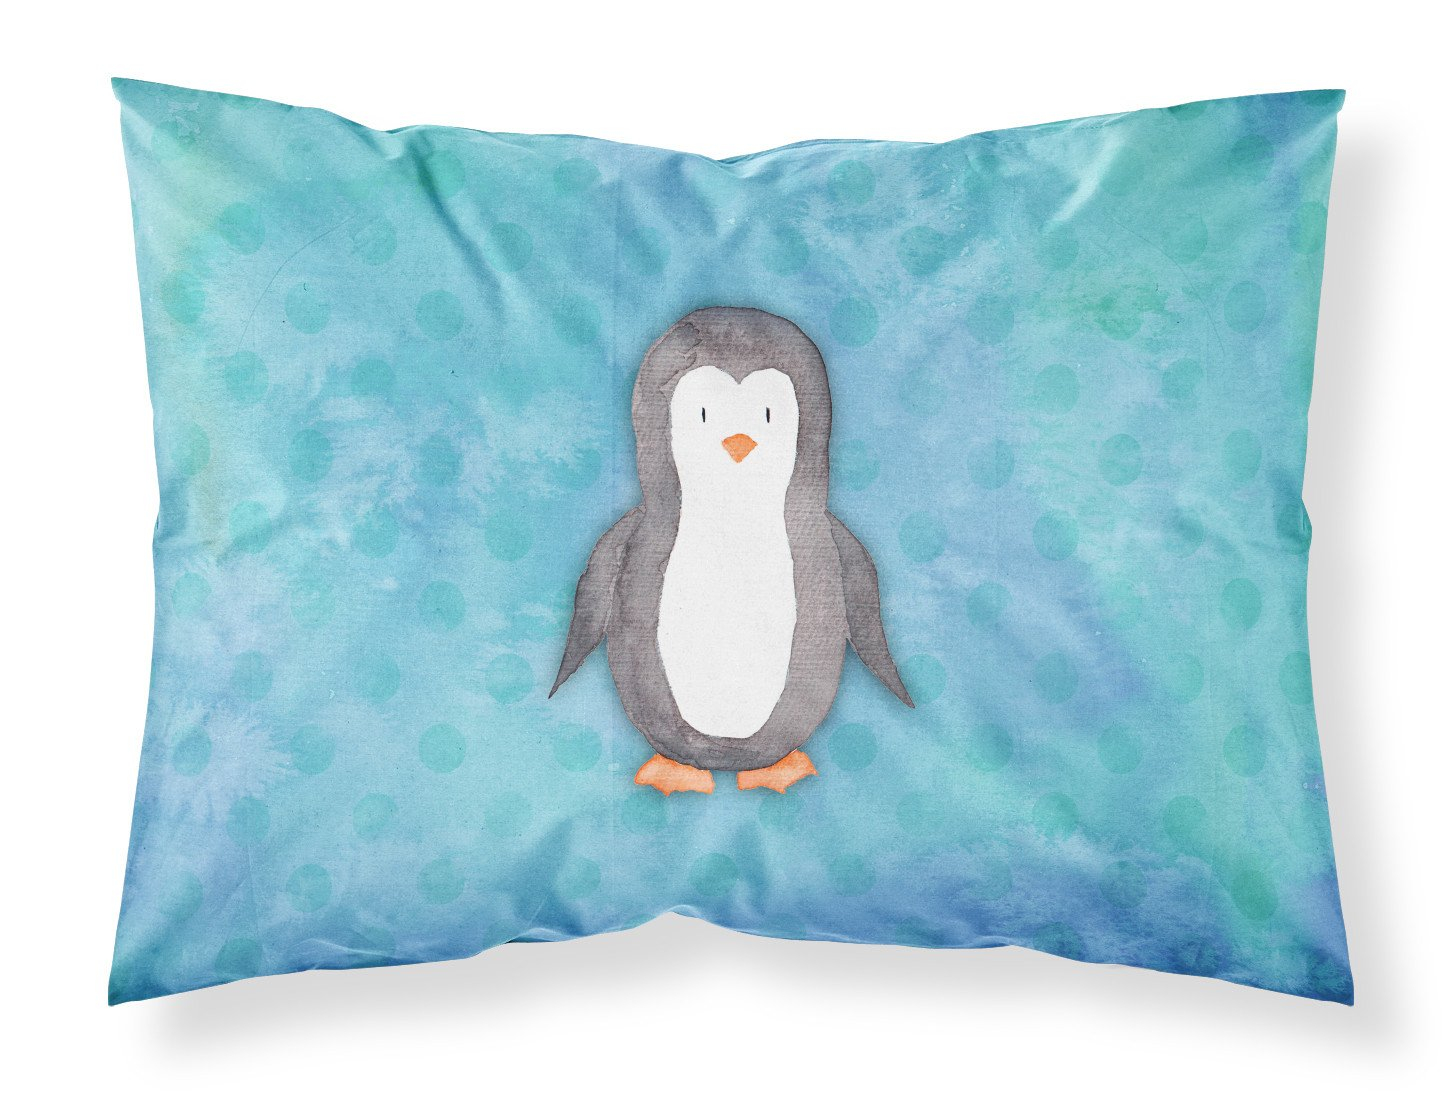 Buy this Polkadot Penguin Watercolor Fabric Standard Pillowcase BB7376PILLOWCASE